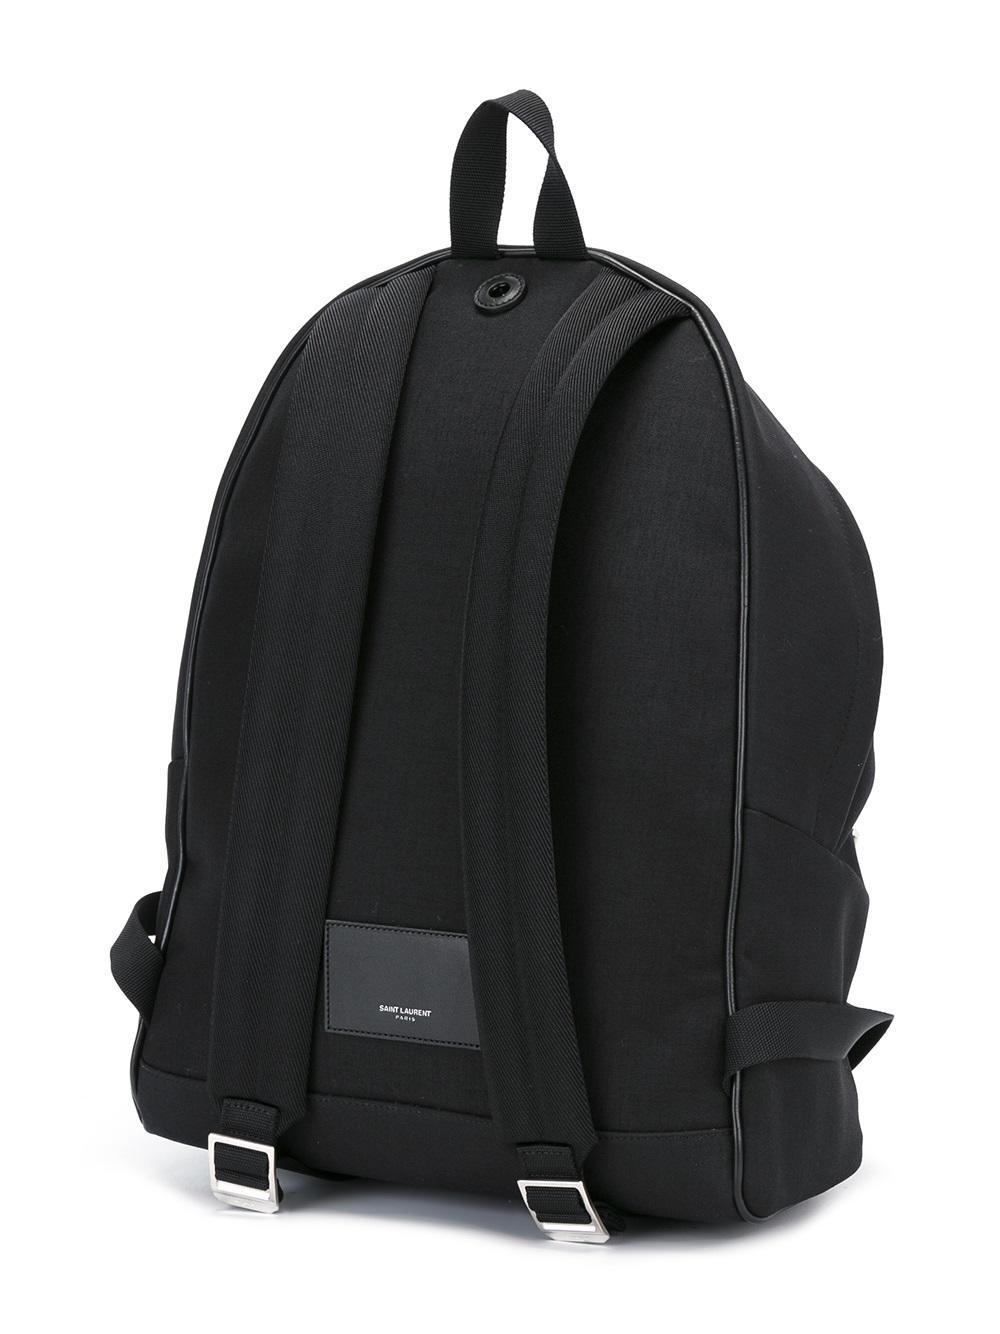 【関税負担】 SAINR LAURENT CITY BACKPACK